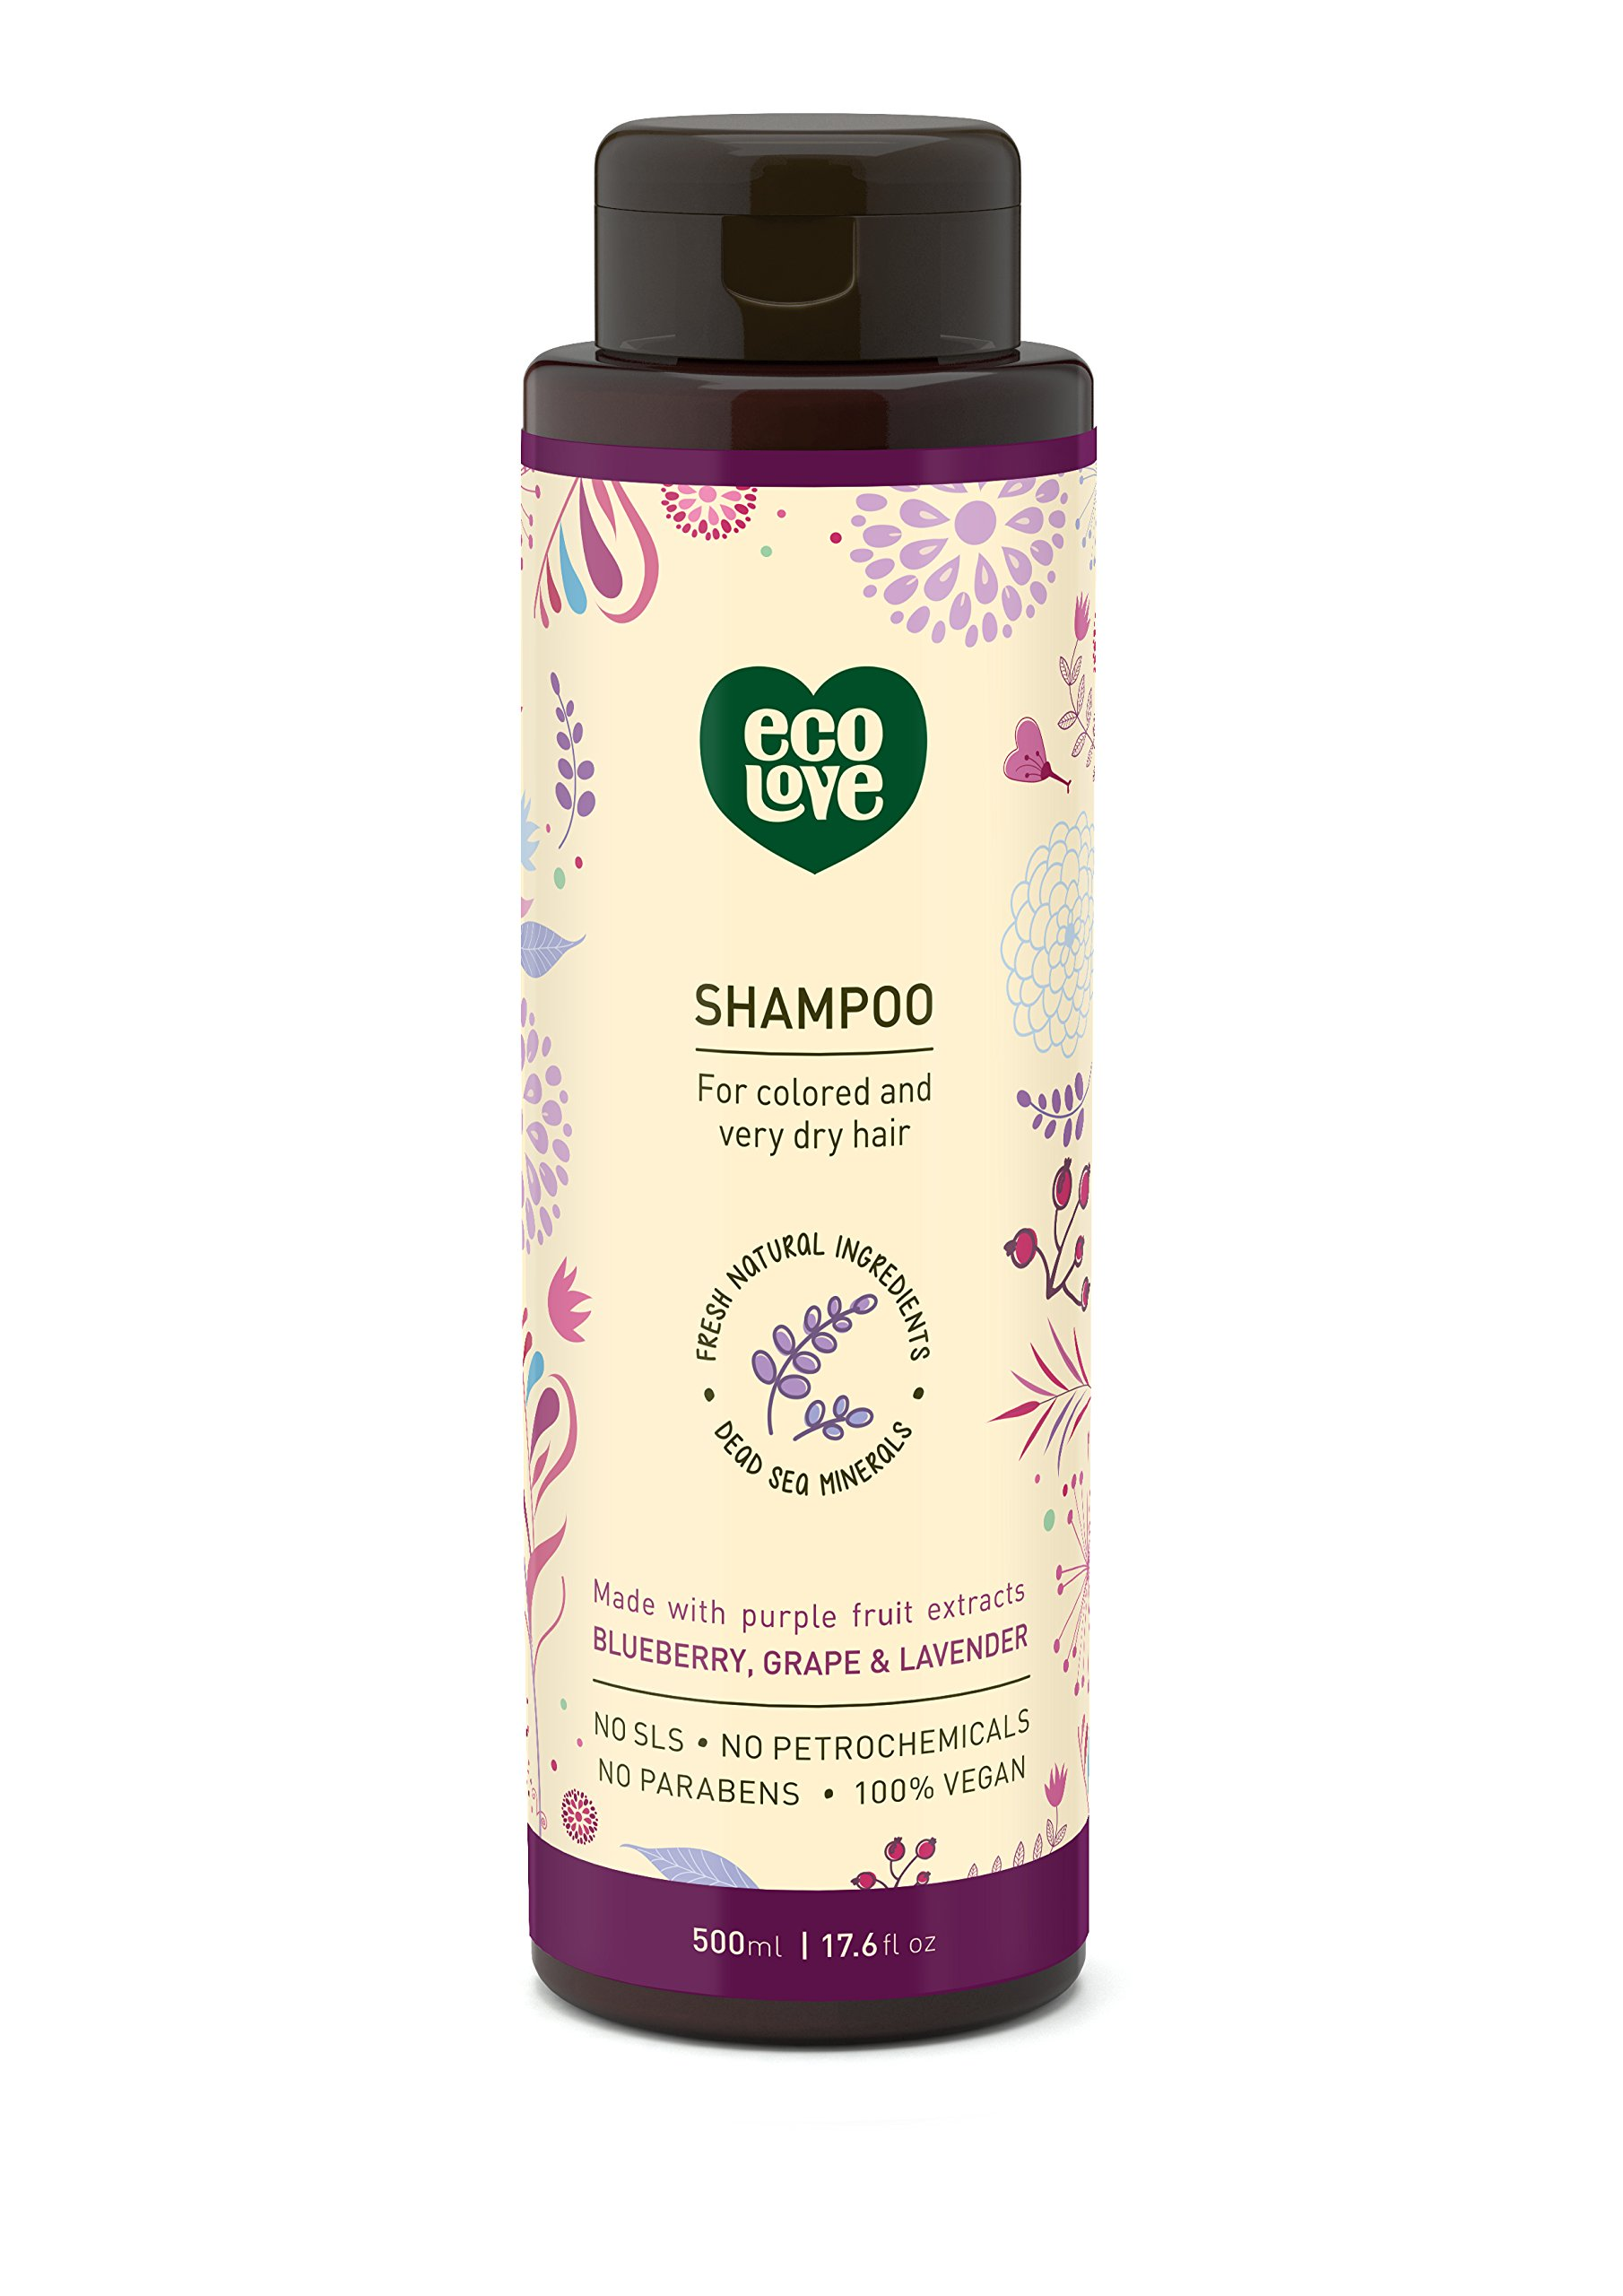 ecoLove - Natural Shampoo for Color Treated Hair & Dry Damaged Hair with Organic Blueberry Grape & Lavender Vegan Shampoo for Women & Men Cruelty Free SLS Free, 17.6 oz by ecoLove